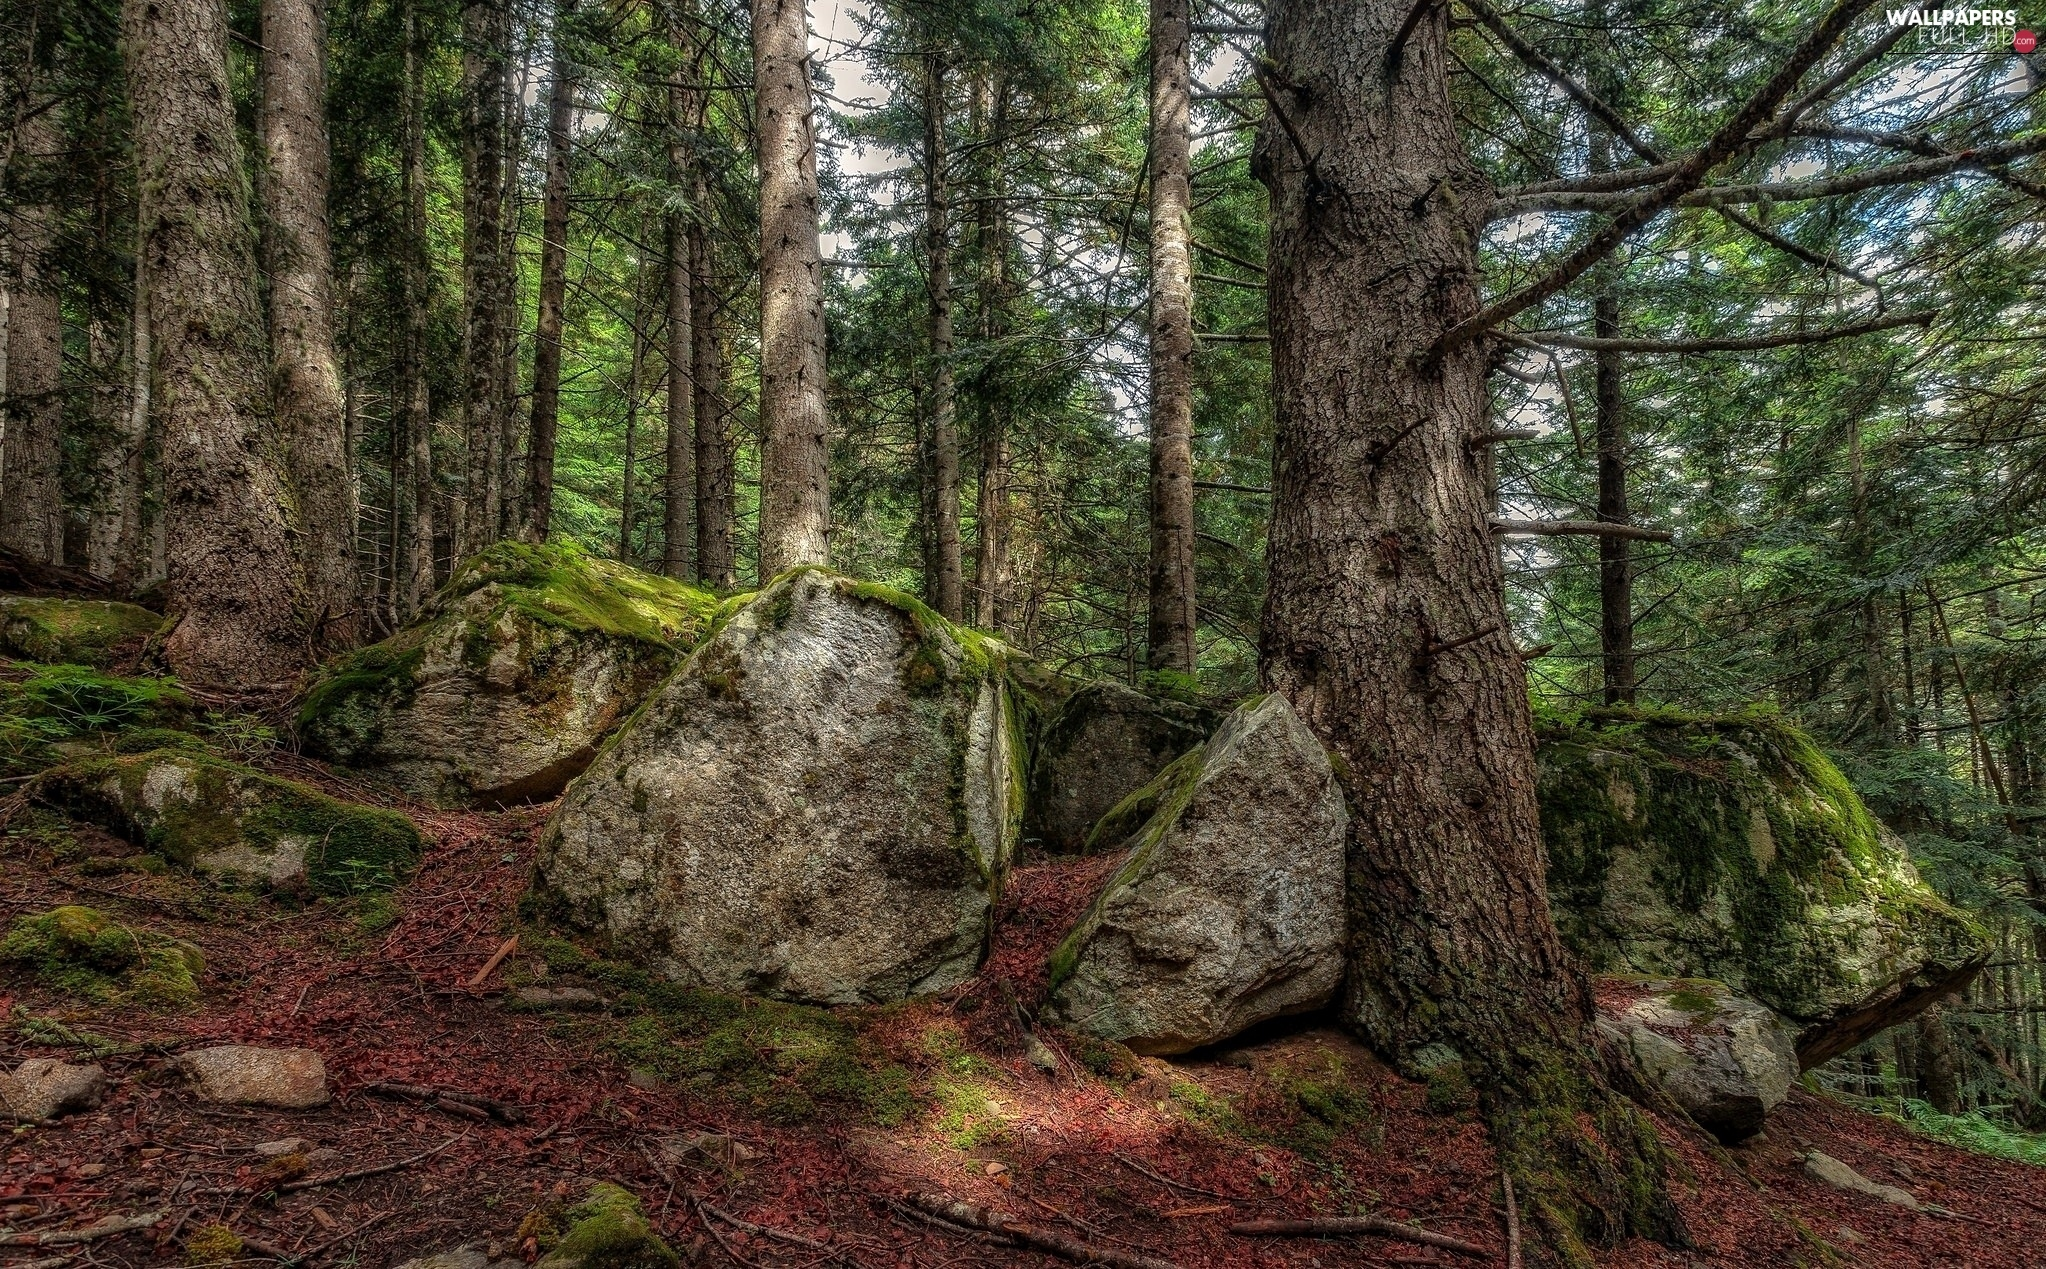 Stones, Moss, forest